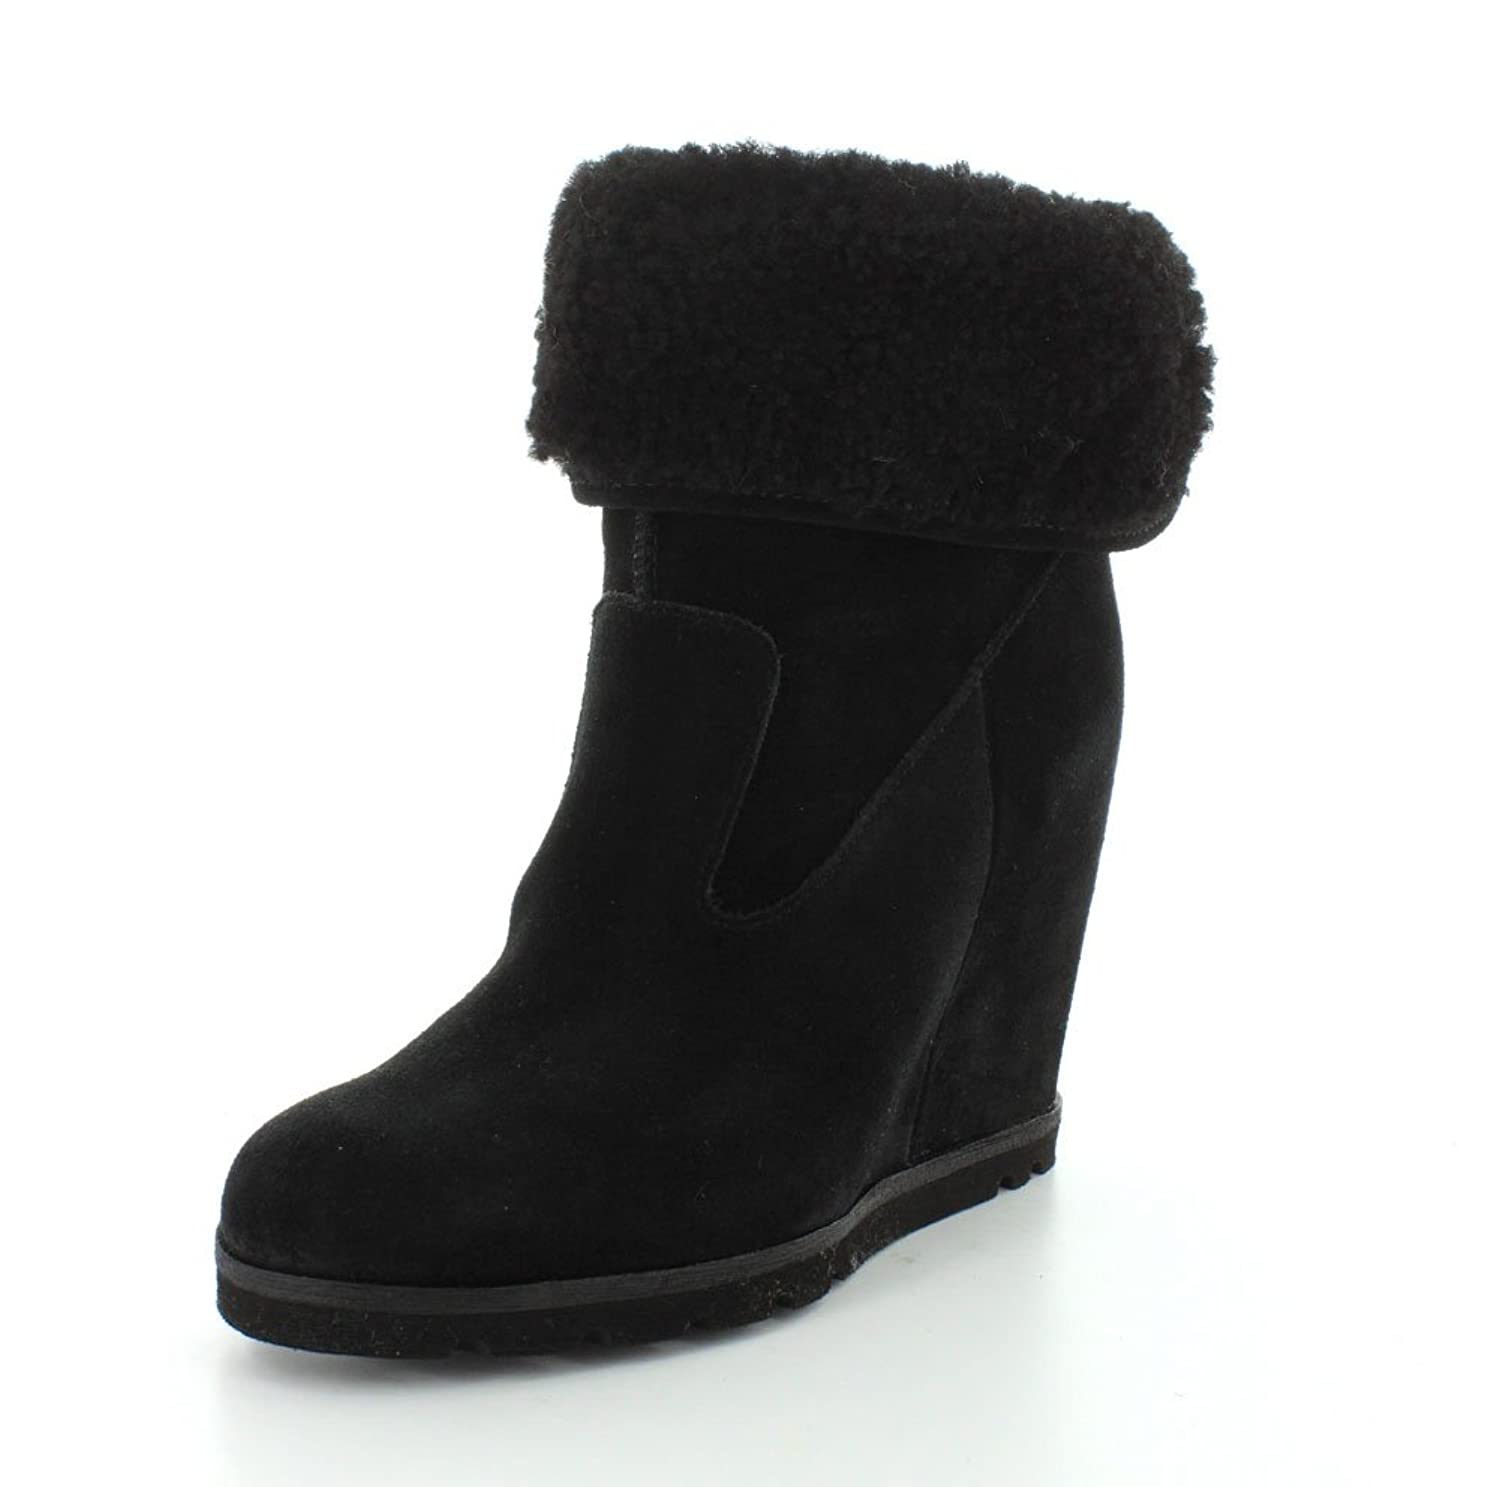 sale shop for extremely UGG Australia Kyra Wedge Boots recommend sale online clearance low price fee shipping low shipping for sale QiREiK7Jv